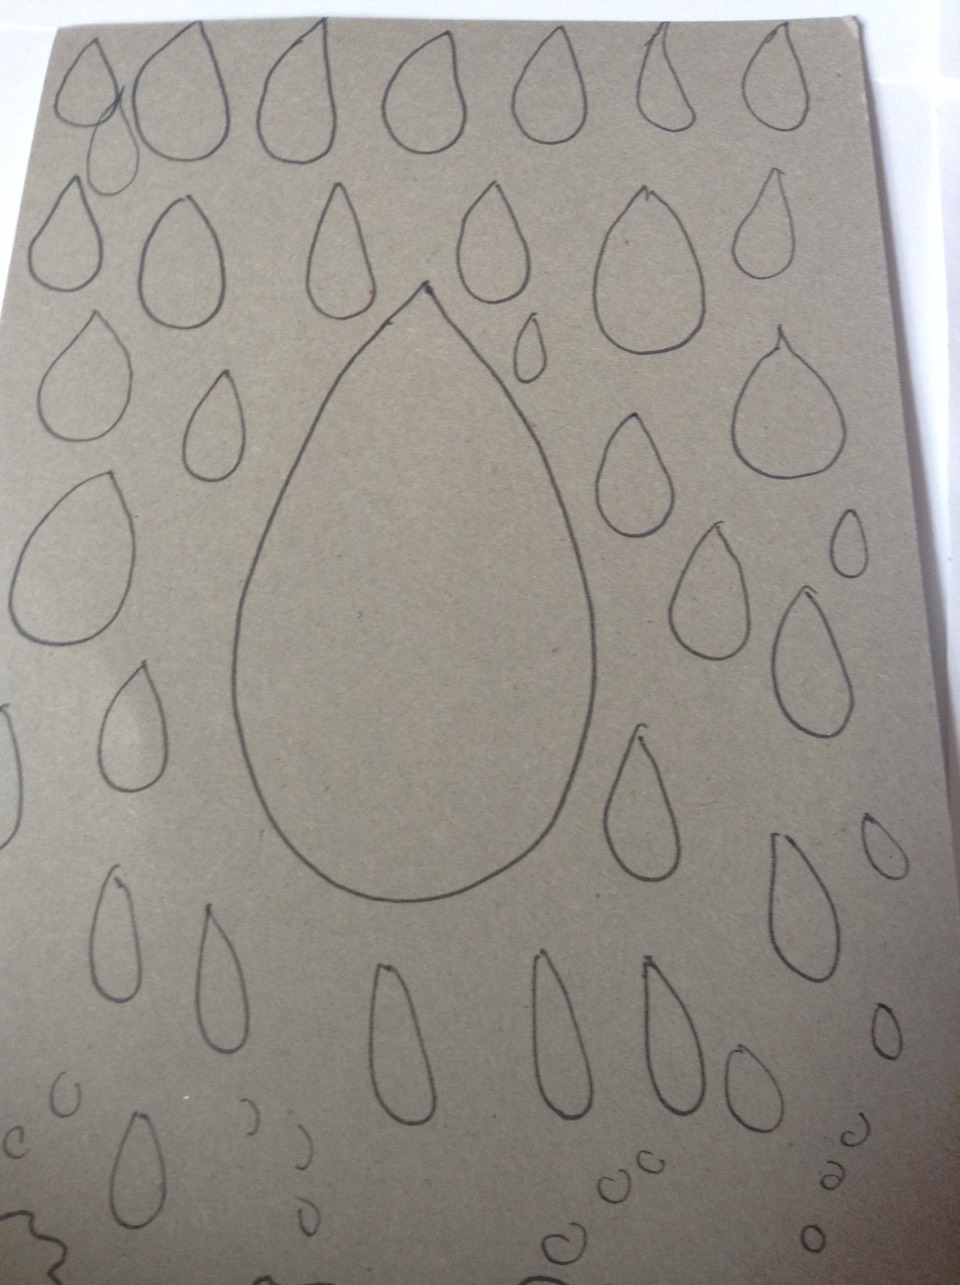 Draw and cut out raindrops